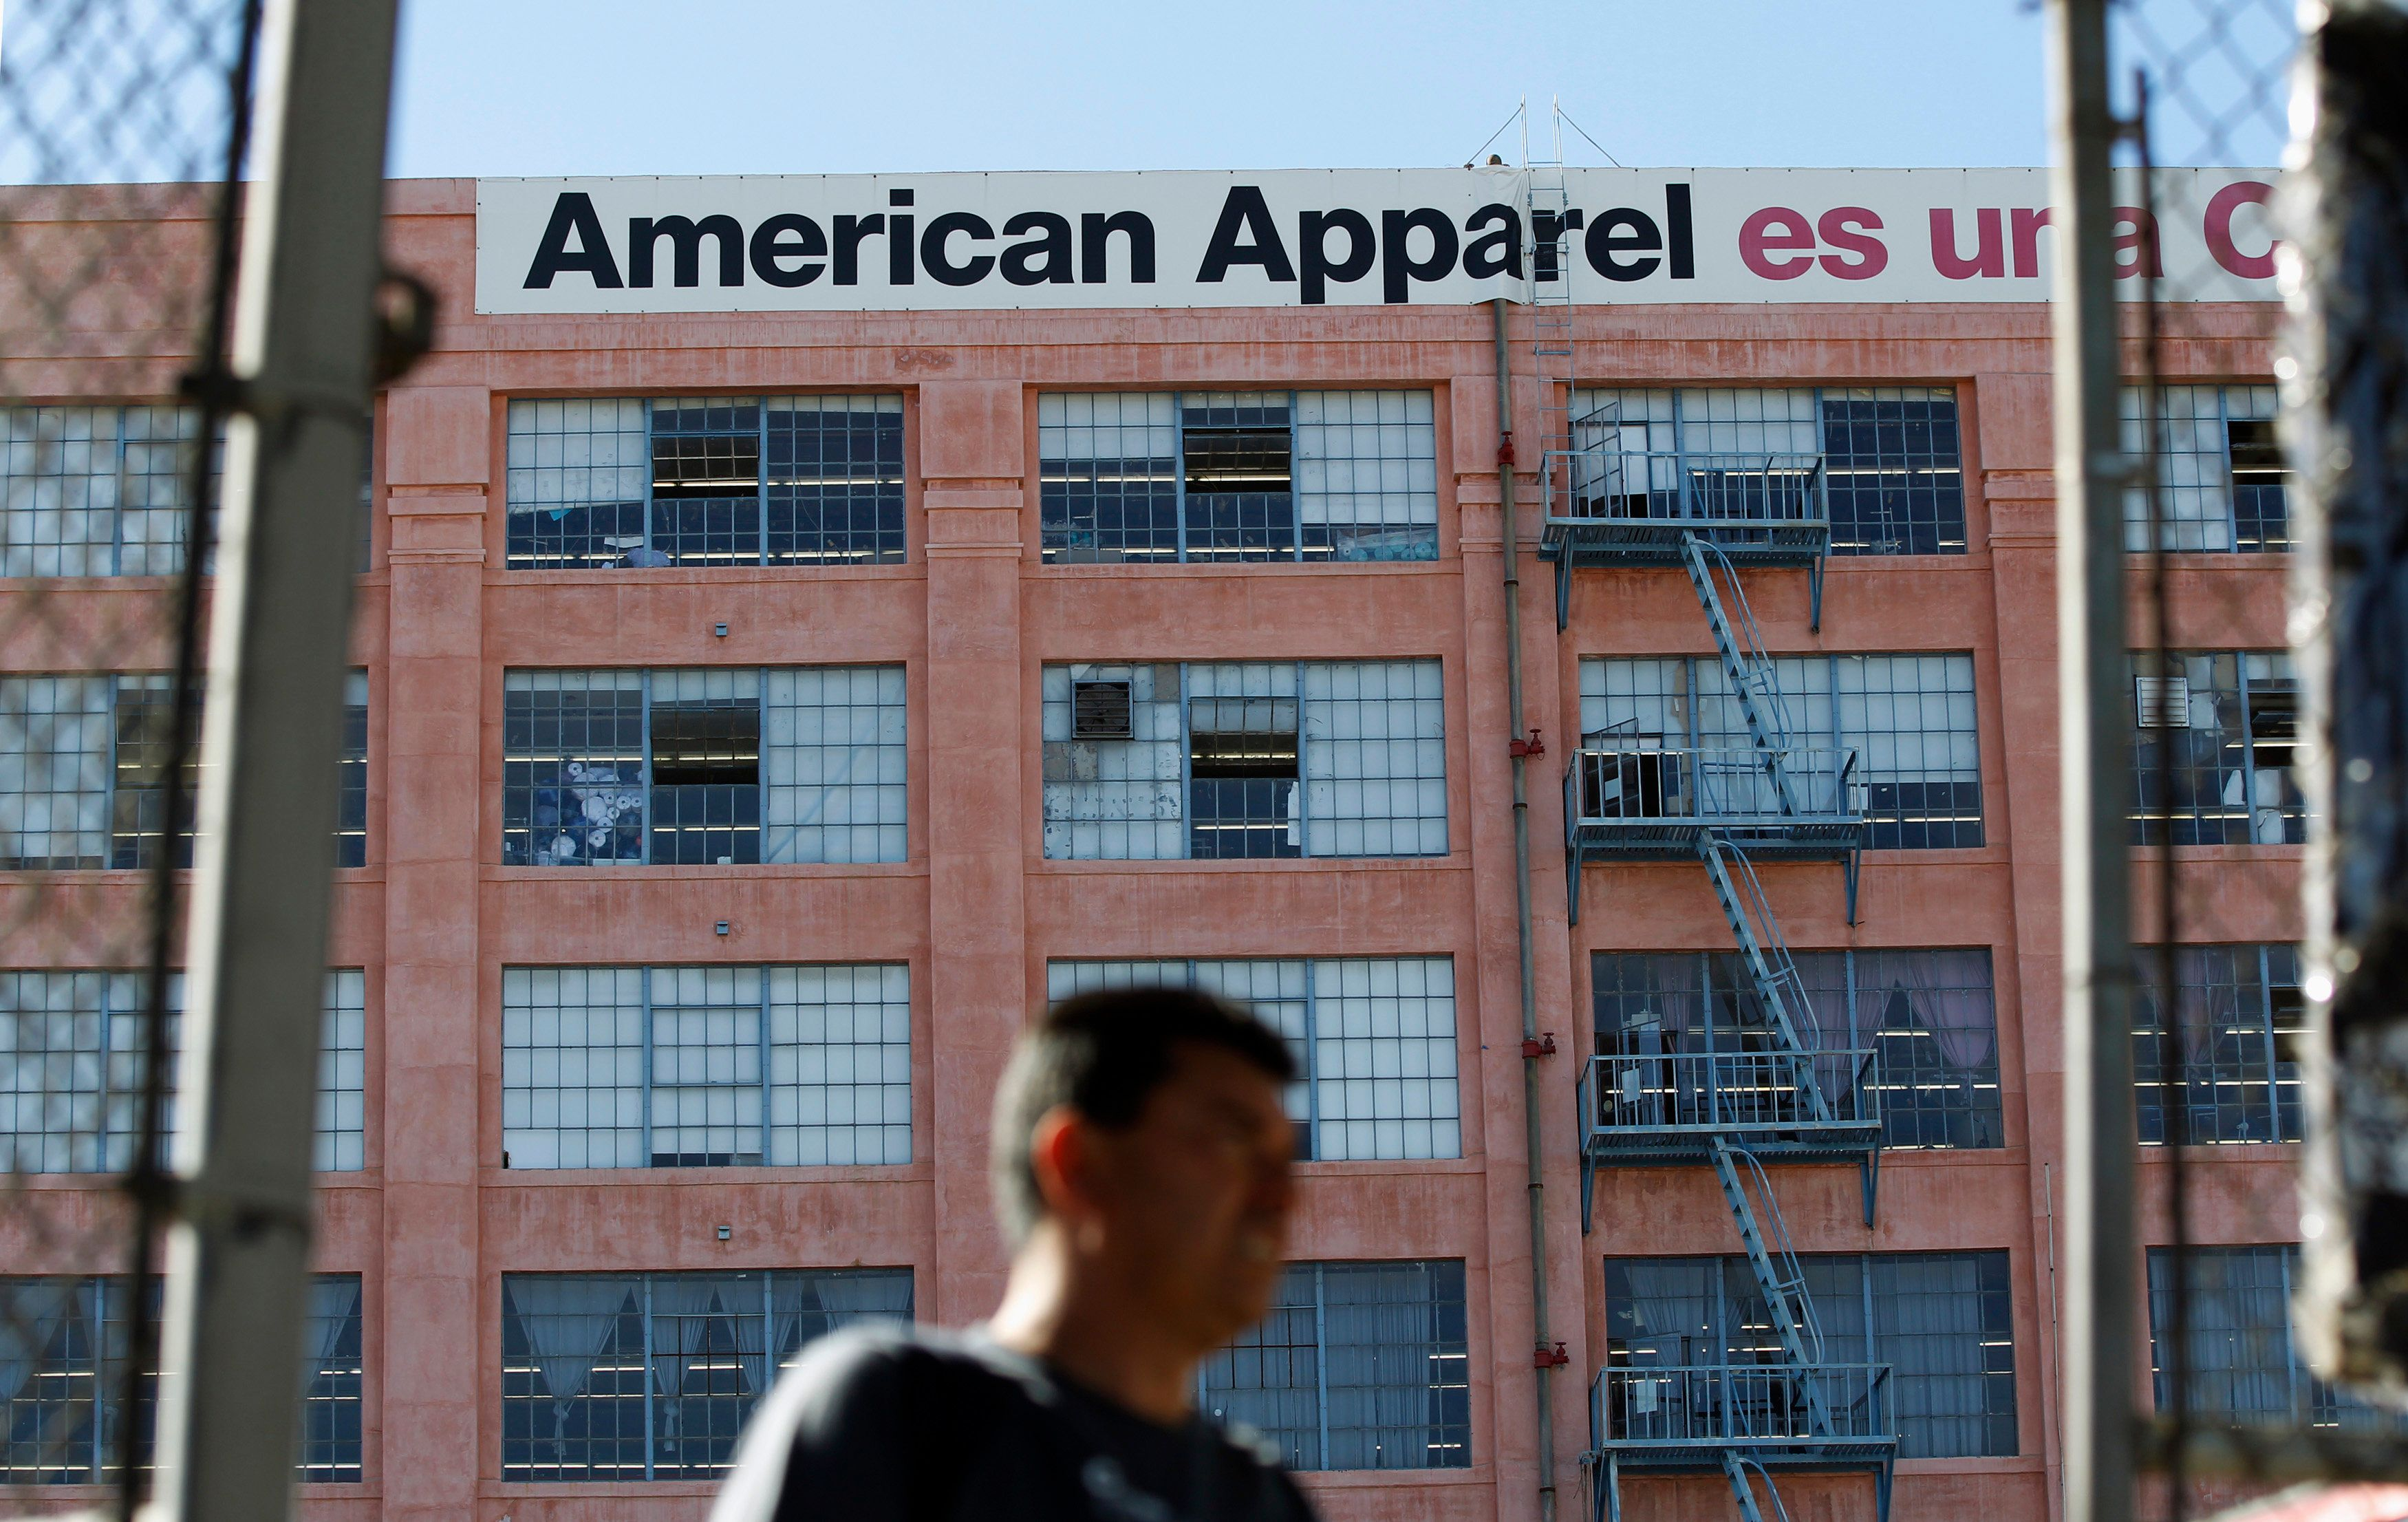 A man walks past the American Apparel headquarters in Los Angeles April 1, 2011. Clothing chain American Apparel, known for racy advertising and its founder's legal problems, may file for bankruptcy if it does not get enough money to keep running, and might even have to liquidate, the company said. REUTERS/Mario Anzuoni (UNITED STATES - Tags: BUSINESS)